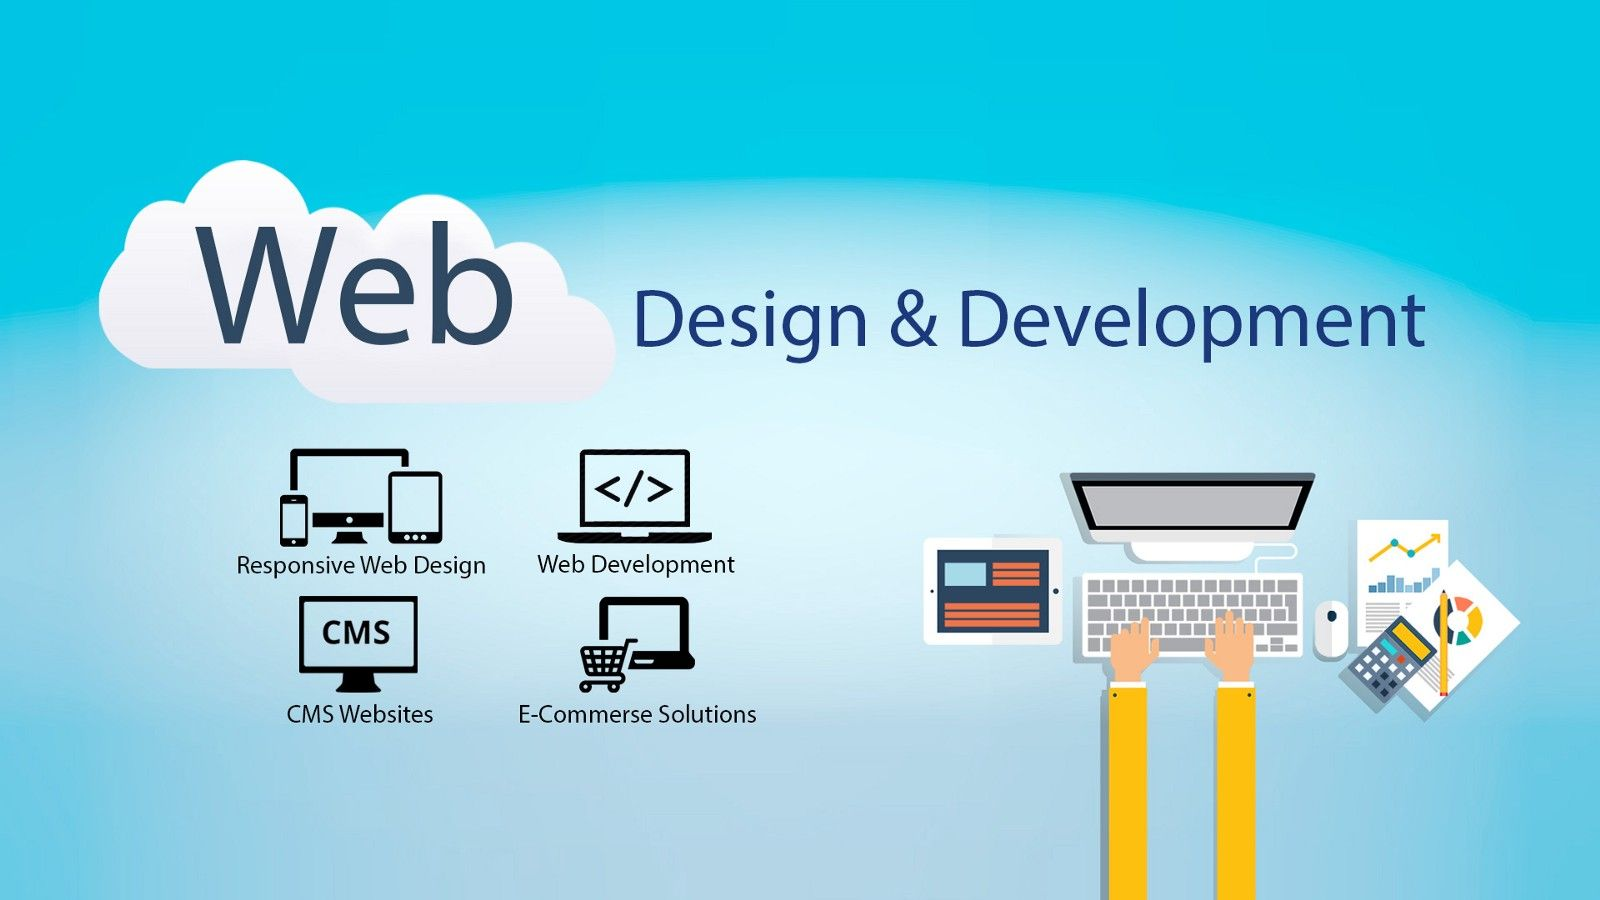 Things Go Easier With Expert Web Design And Development Services In Melbourne Web Development Design Web Development Web Design Company